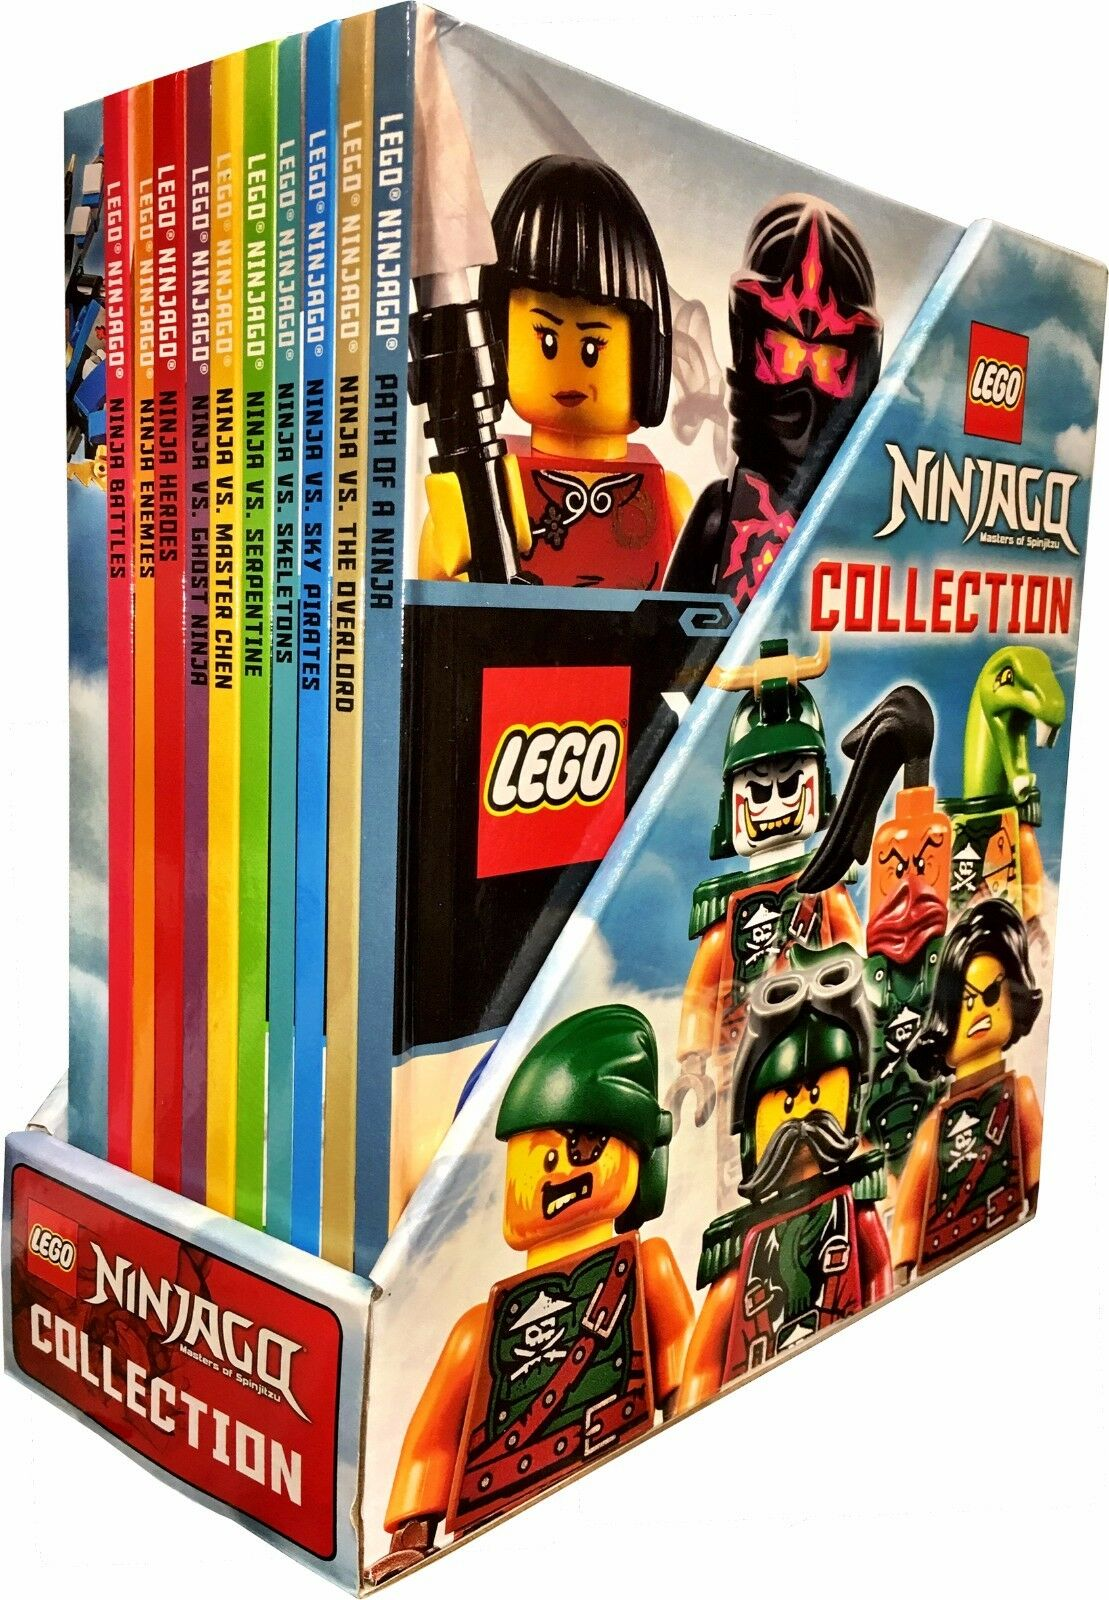 Lego ninjago collection 10 books box set inc minifigure toy ninja vs ghost ninja ebay - Ninjago vs ninjago ...